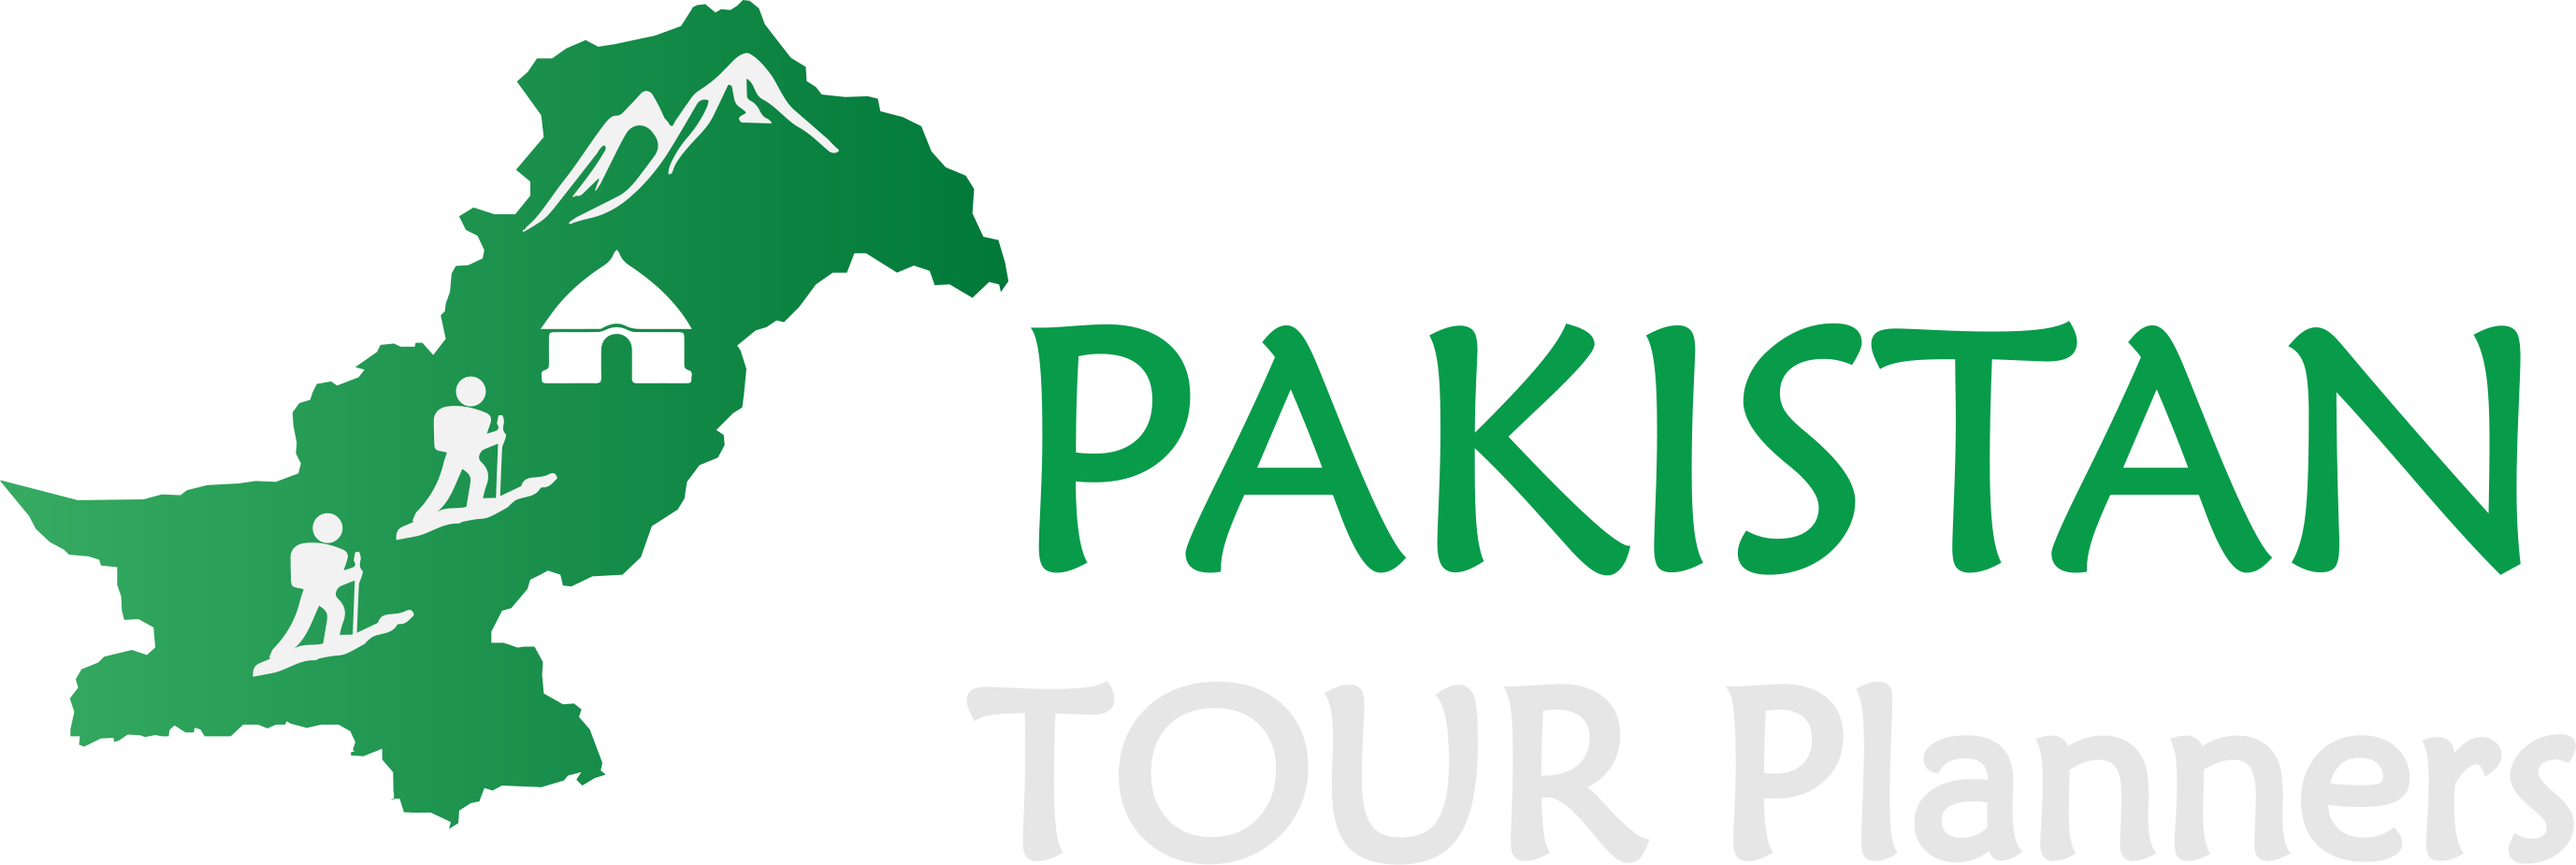 Pakistan tour planners experience. Planner clipart specification